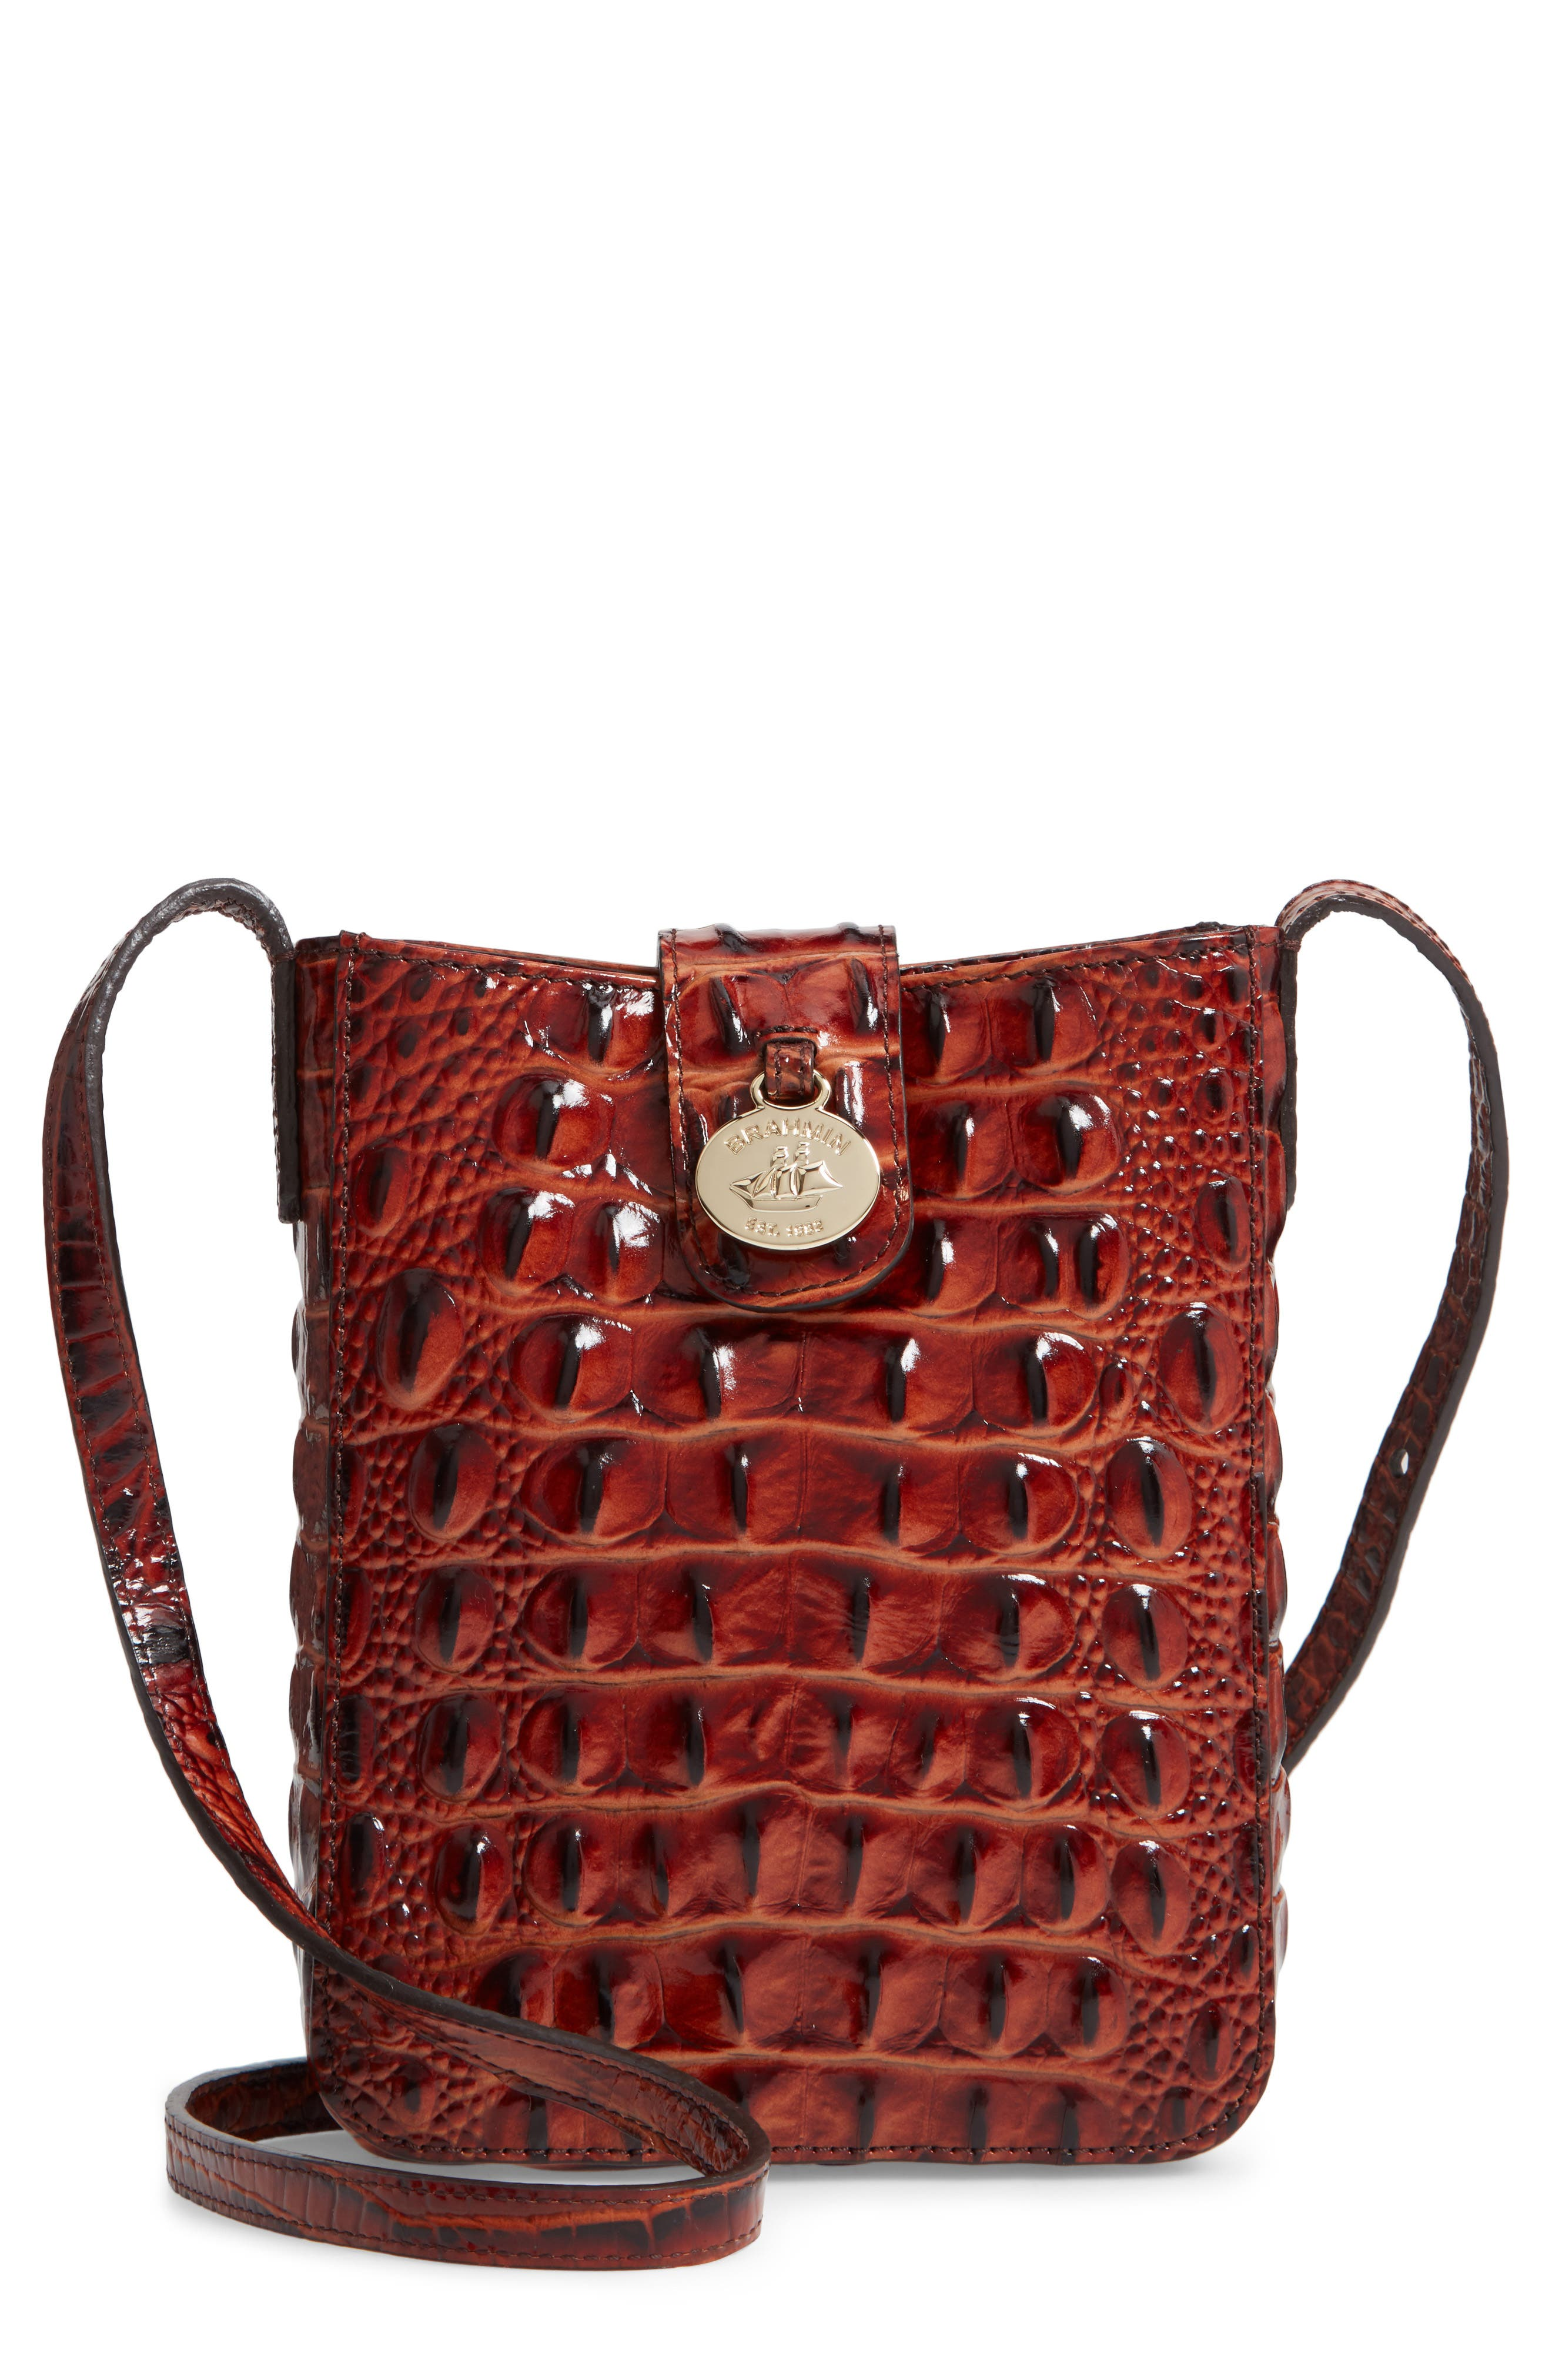 Marley Croc Embossed Leather Crossbody Bag,                         Main,                         color, PECAN